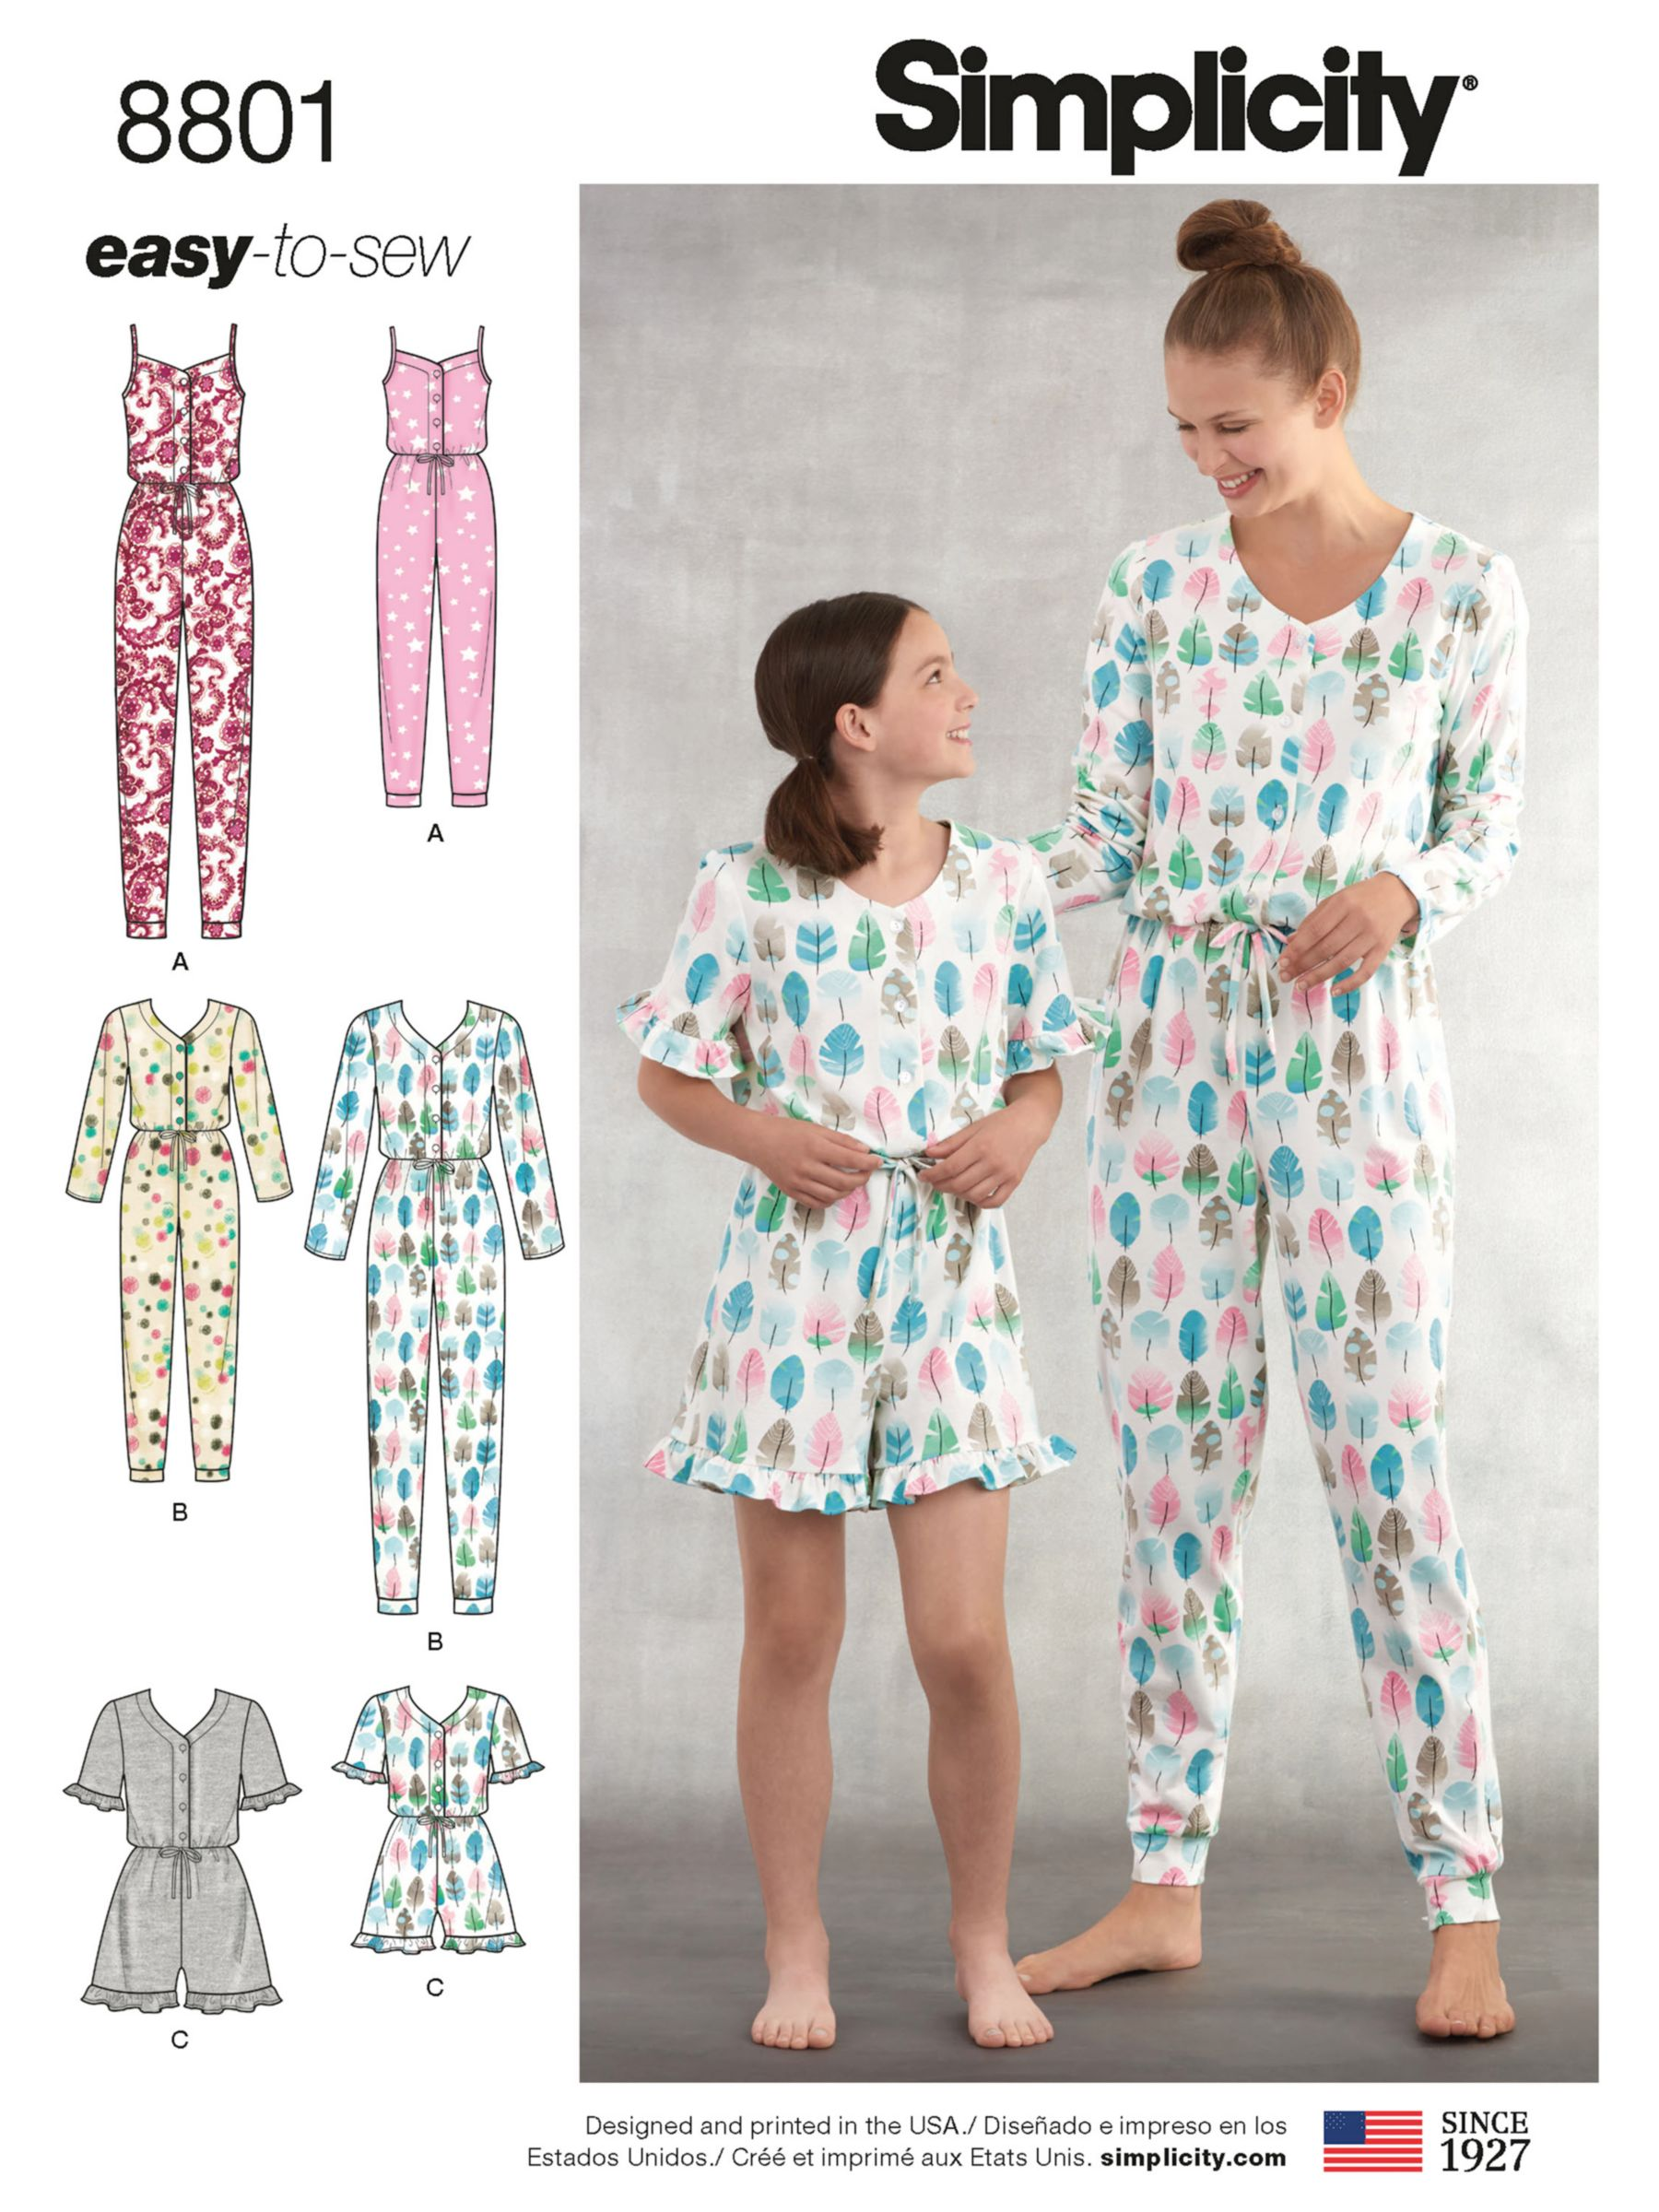 Simplicity Simplicity Women's and Children's Onesie Sewing Pattern, 8801